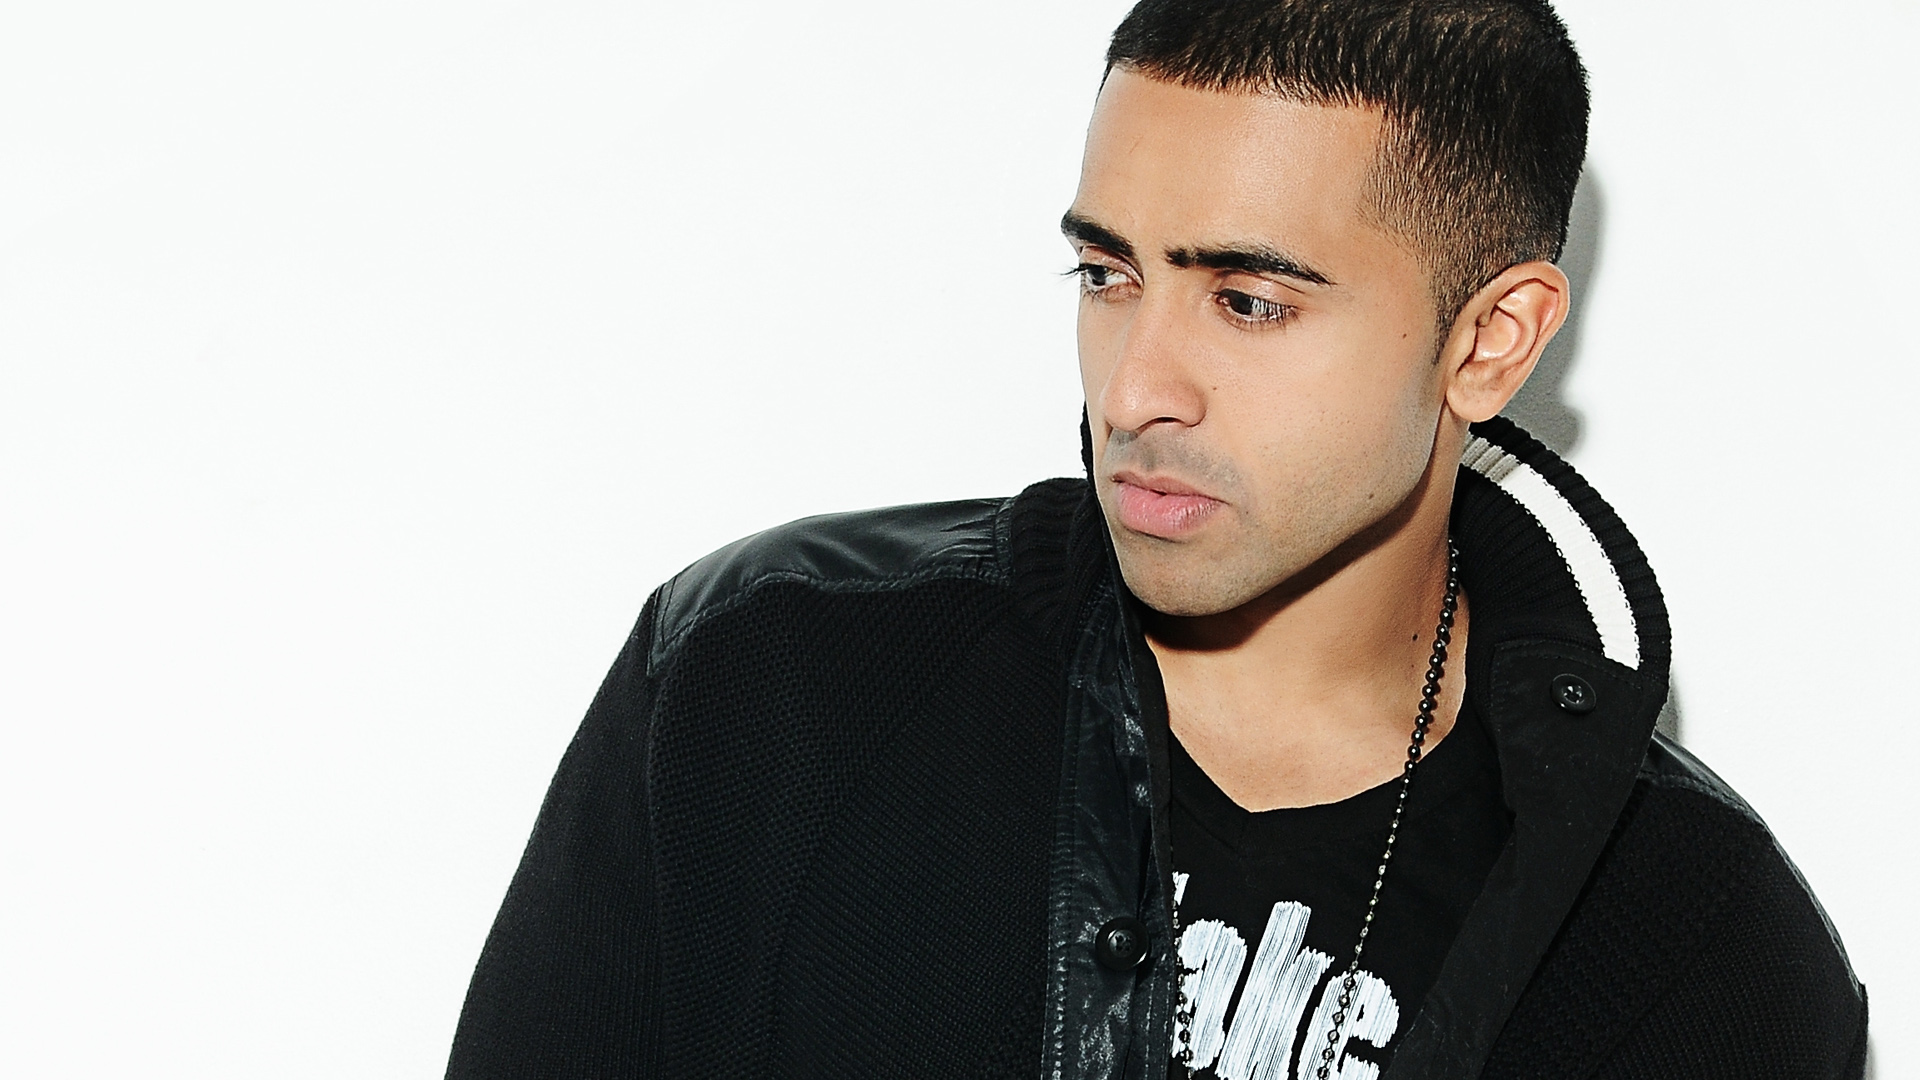 Jay sean ride it mp4 video.